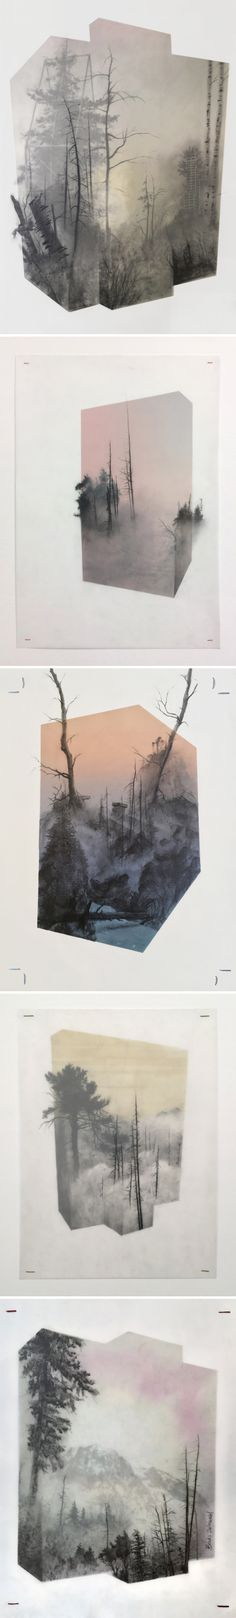 new drawings (!?) by brooks salzwedel